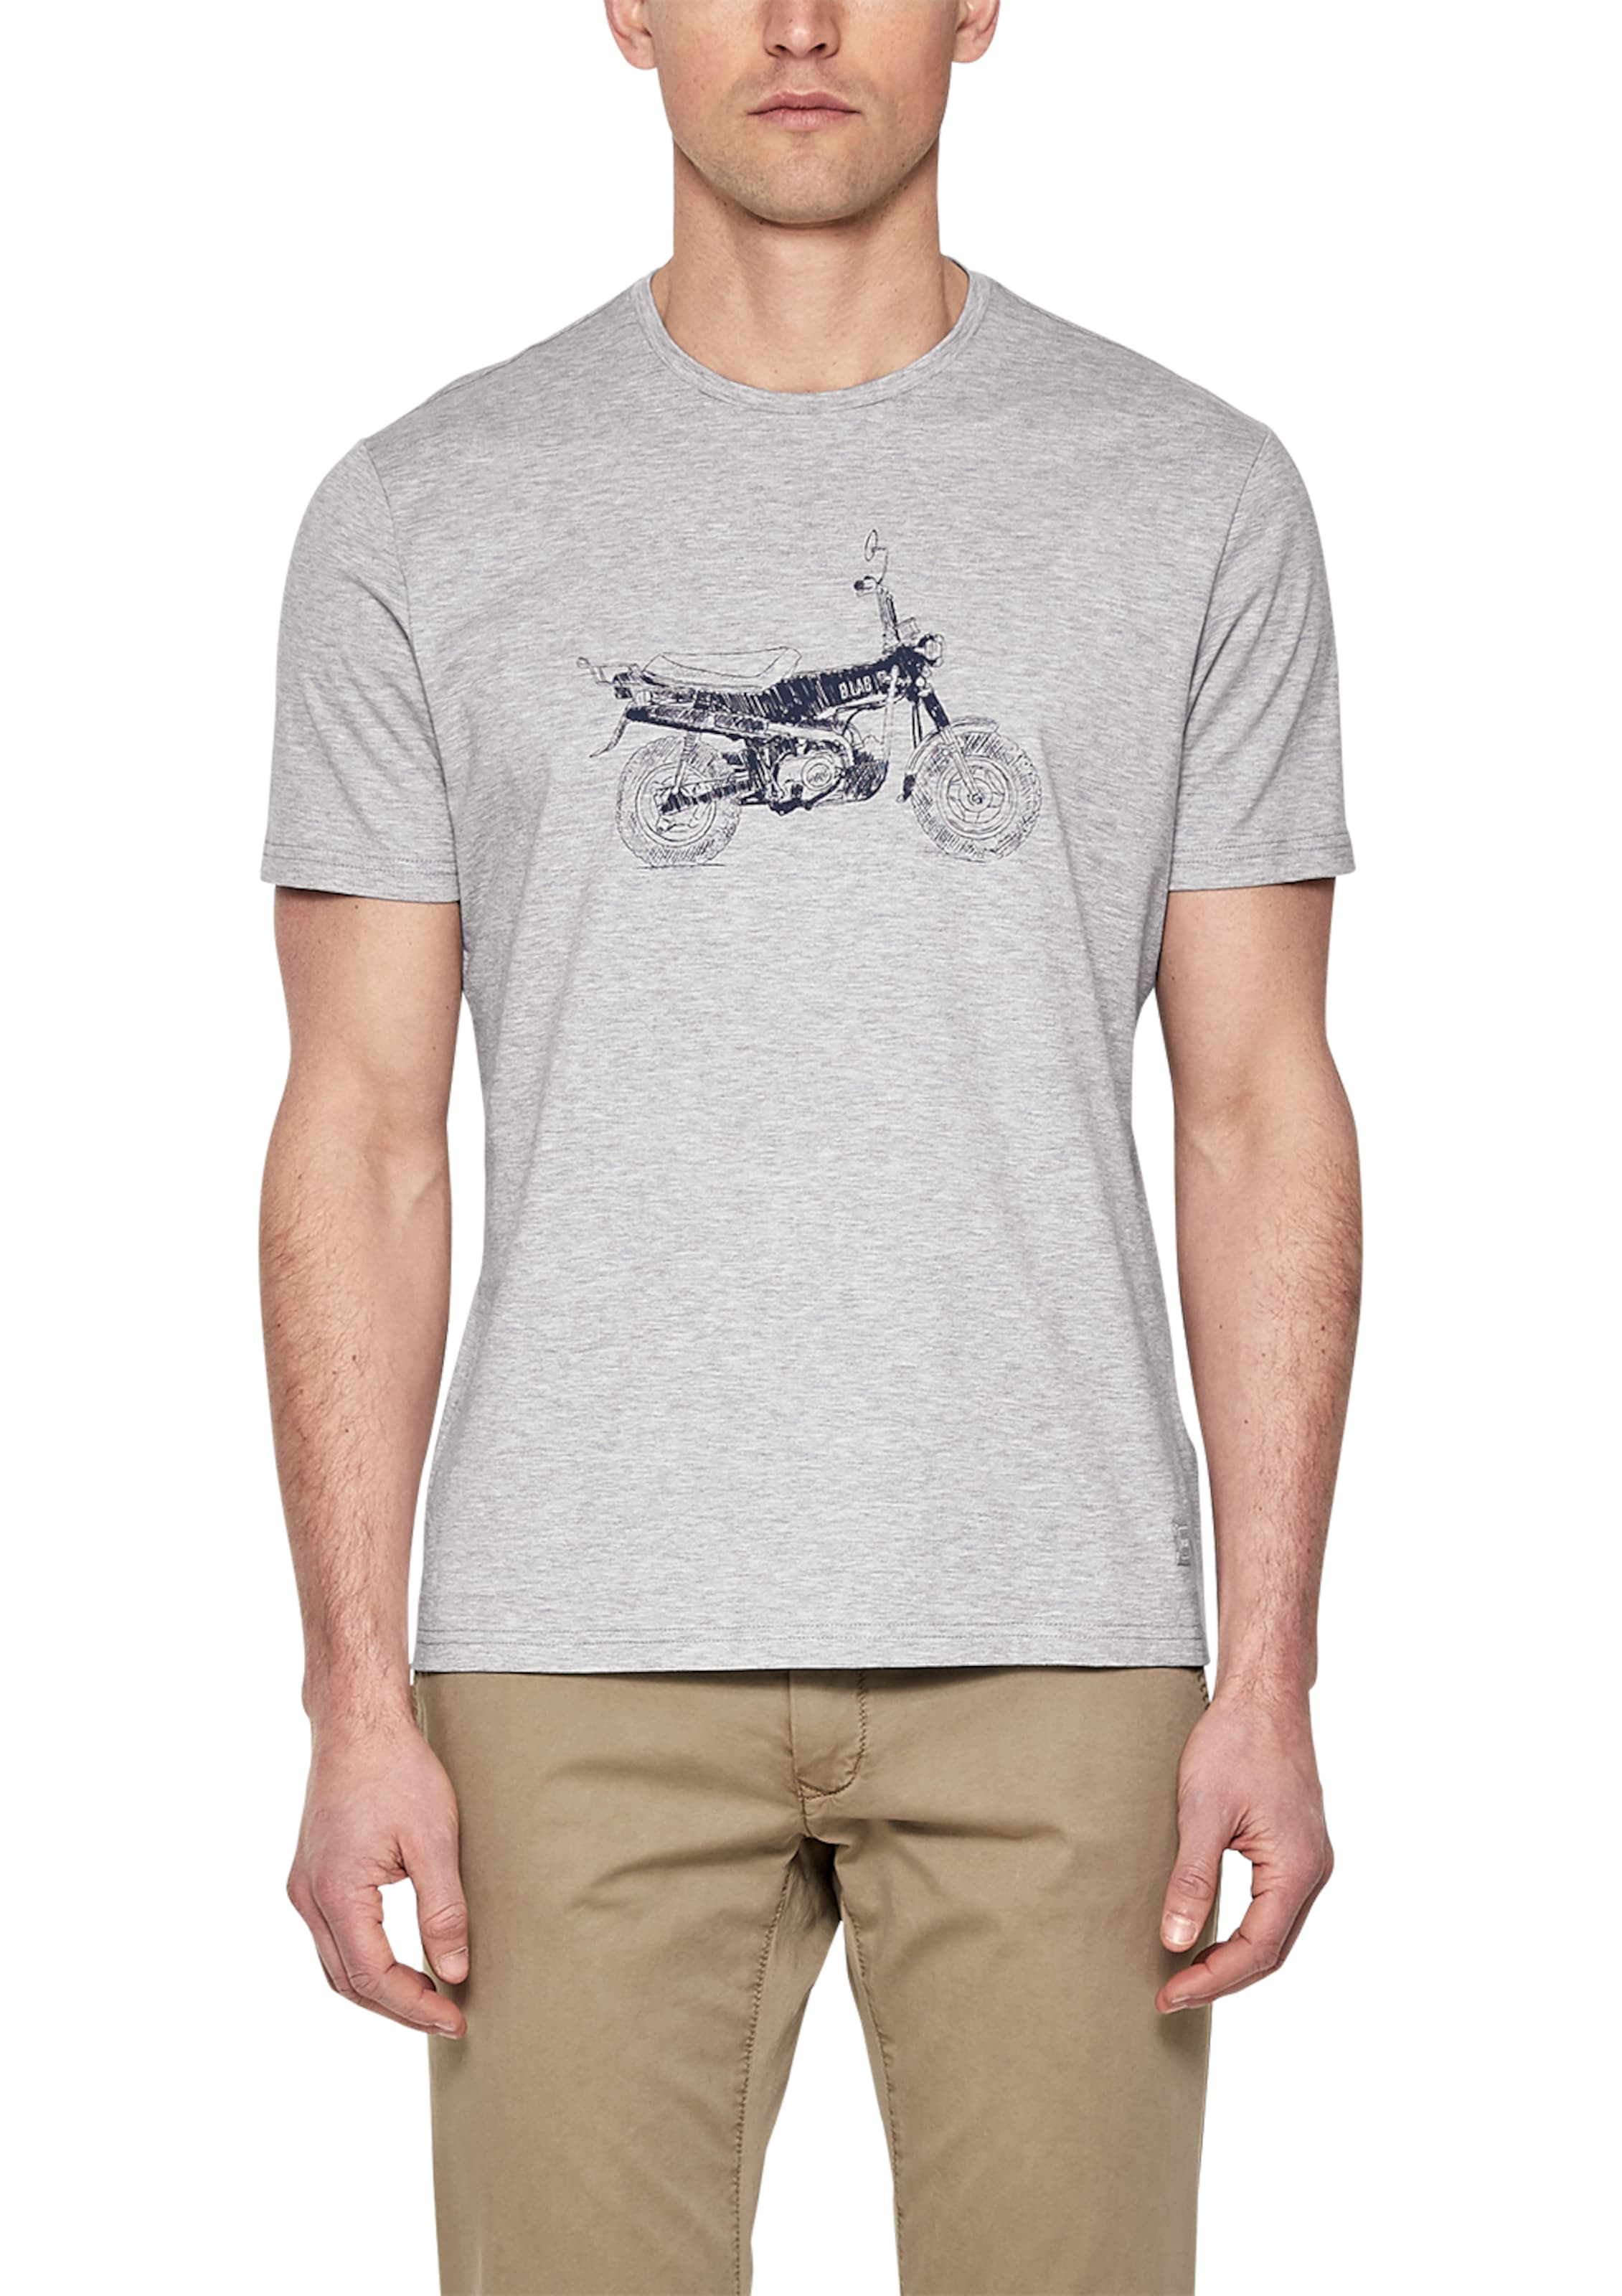 s.Oliver BLACK LABEL Crew Neck-Shirt mit Illustration